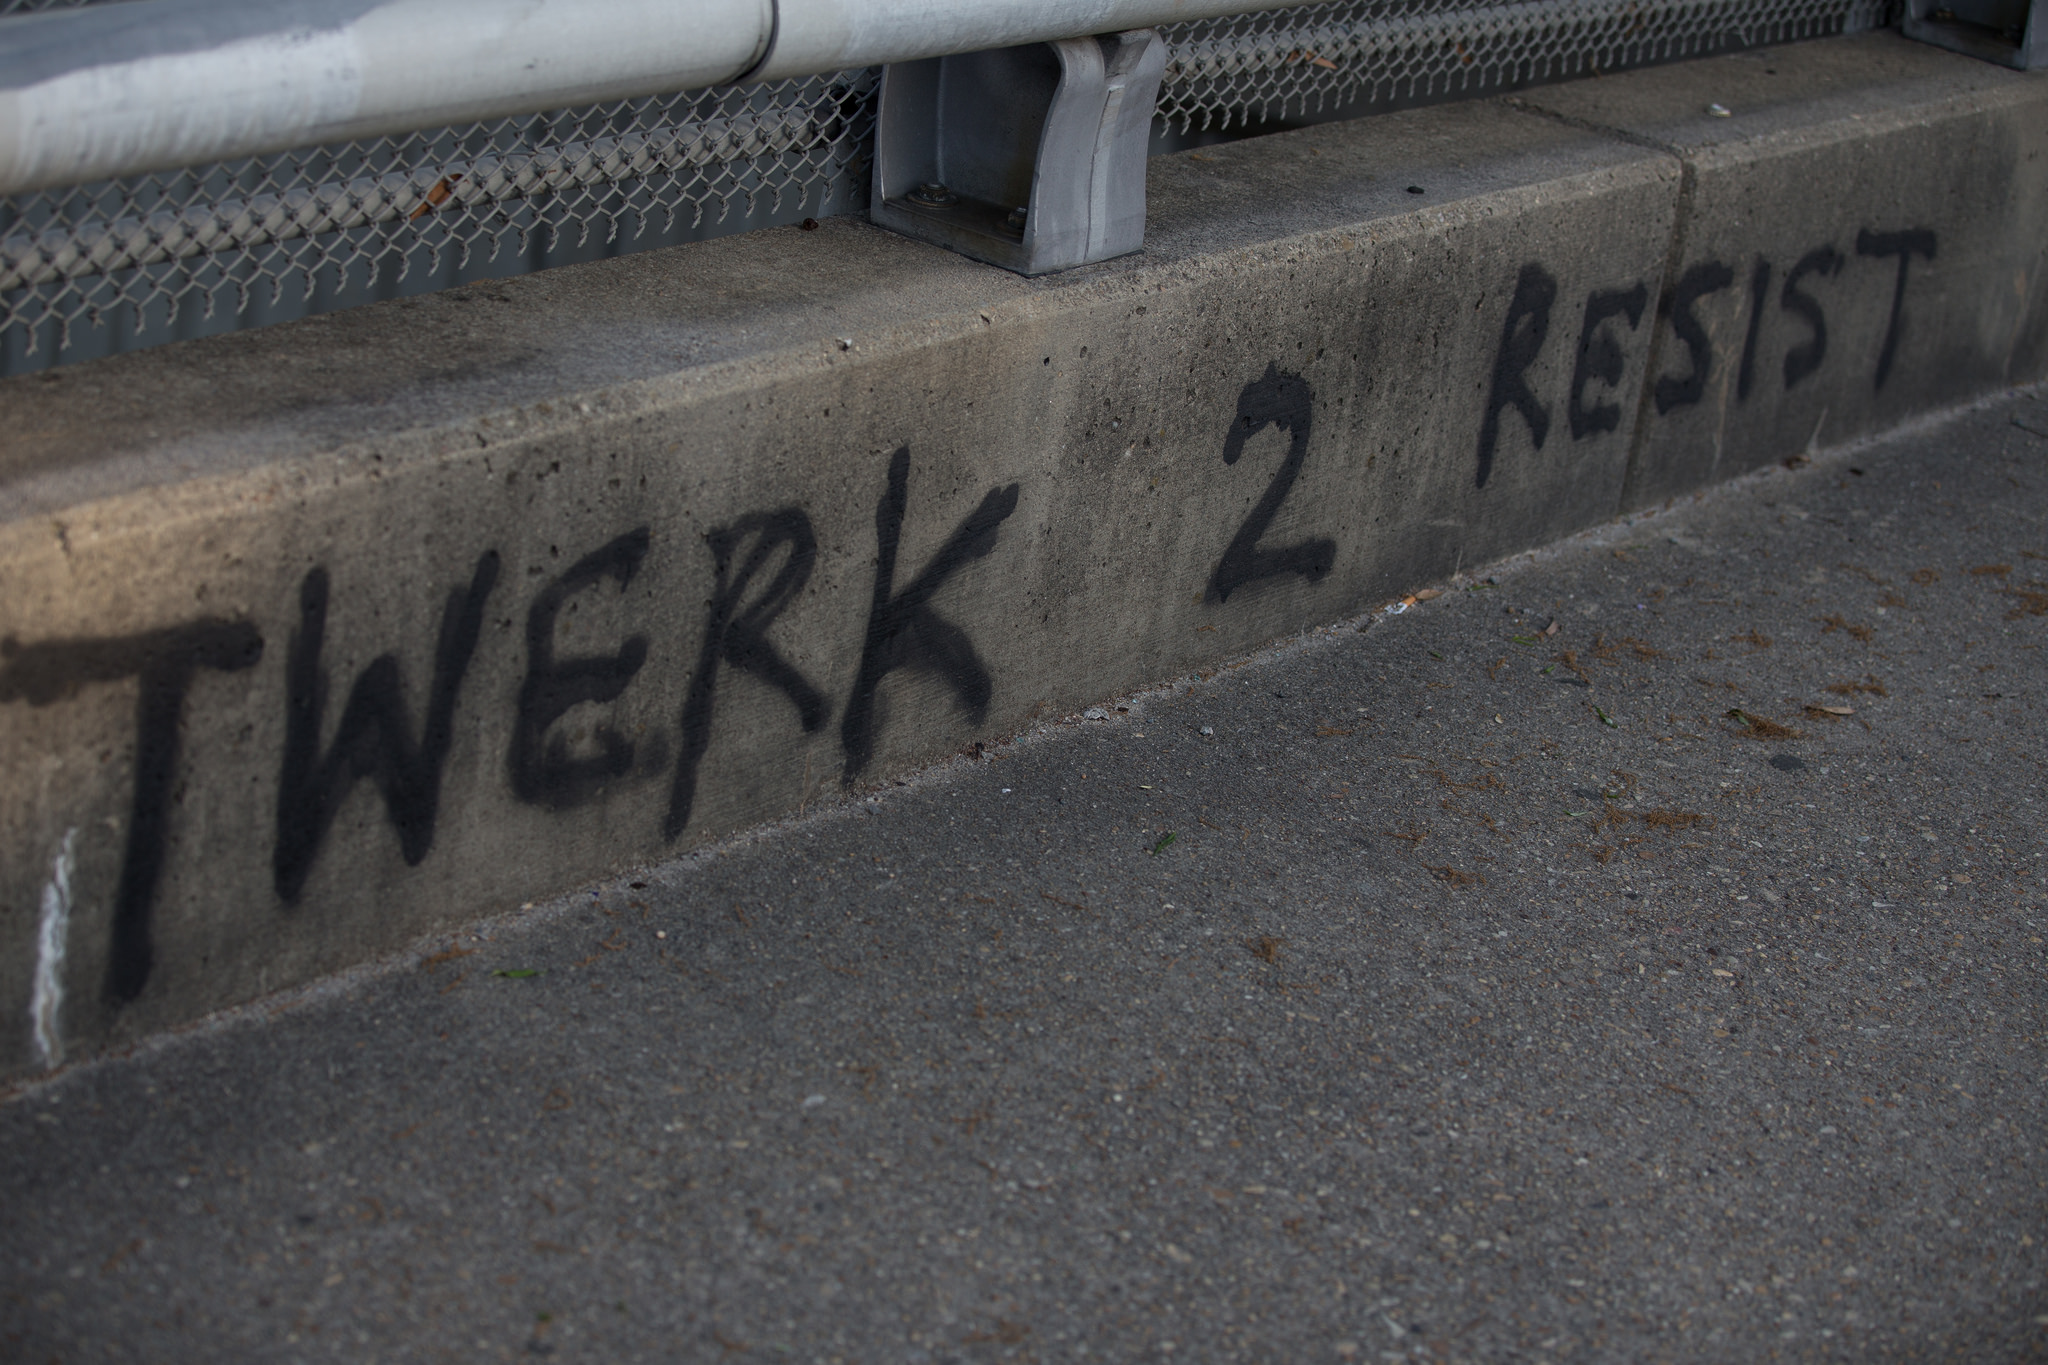 twerk-to-resist